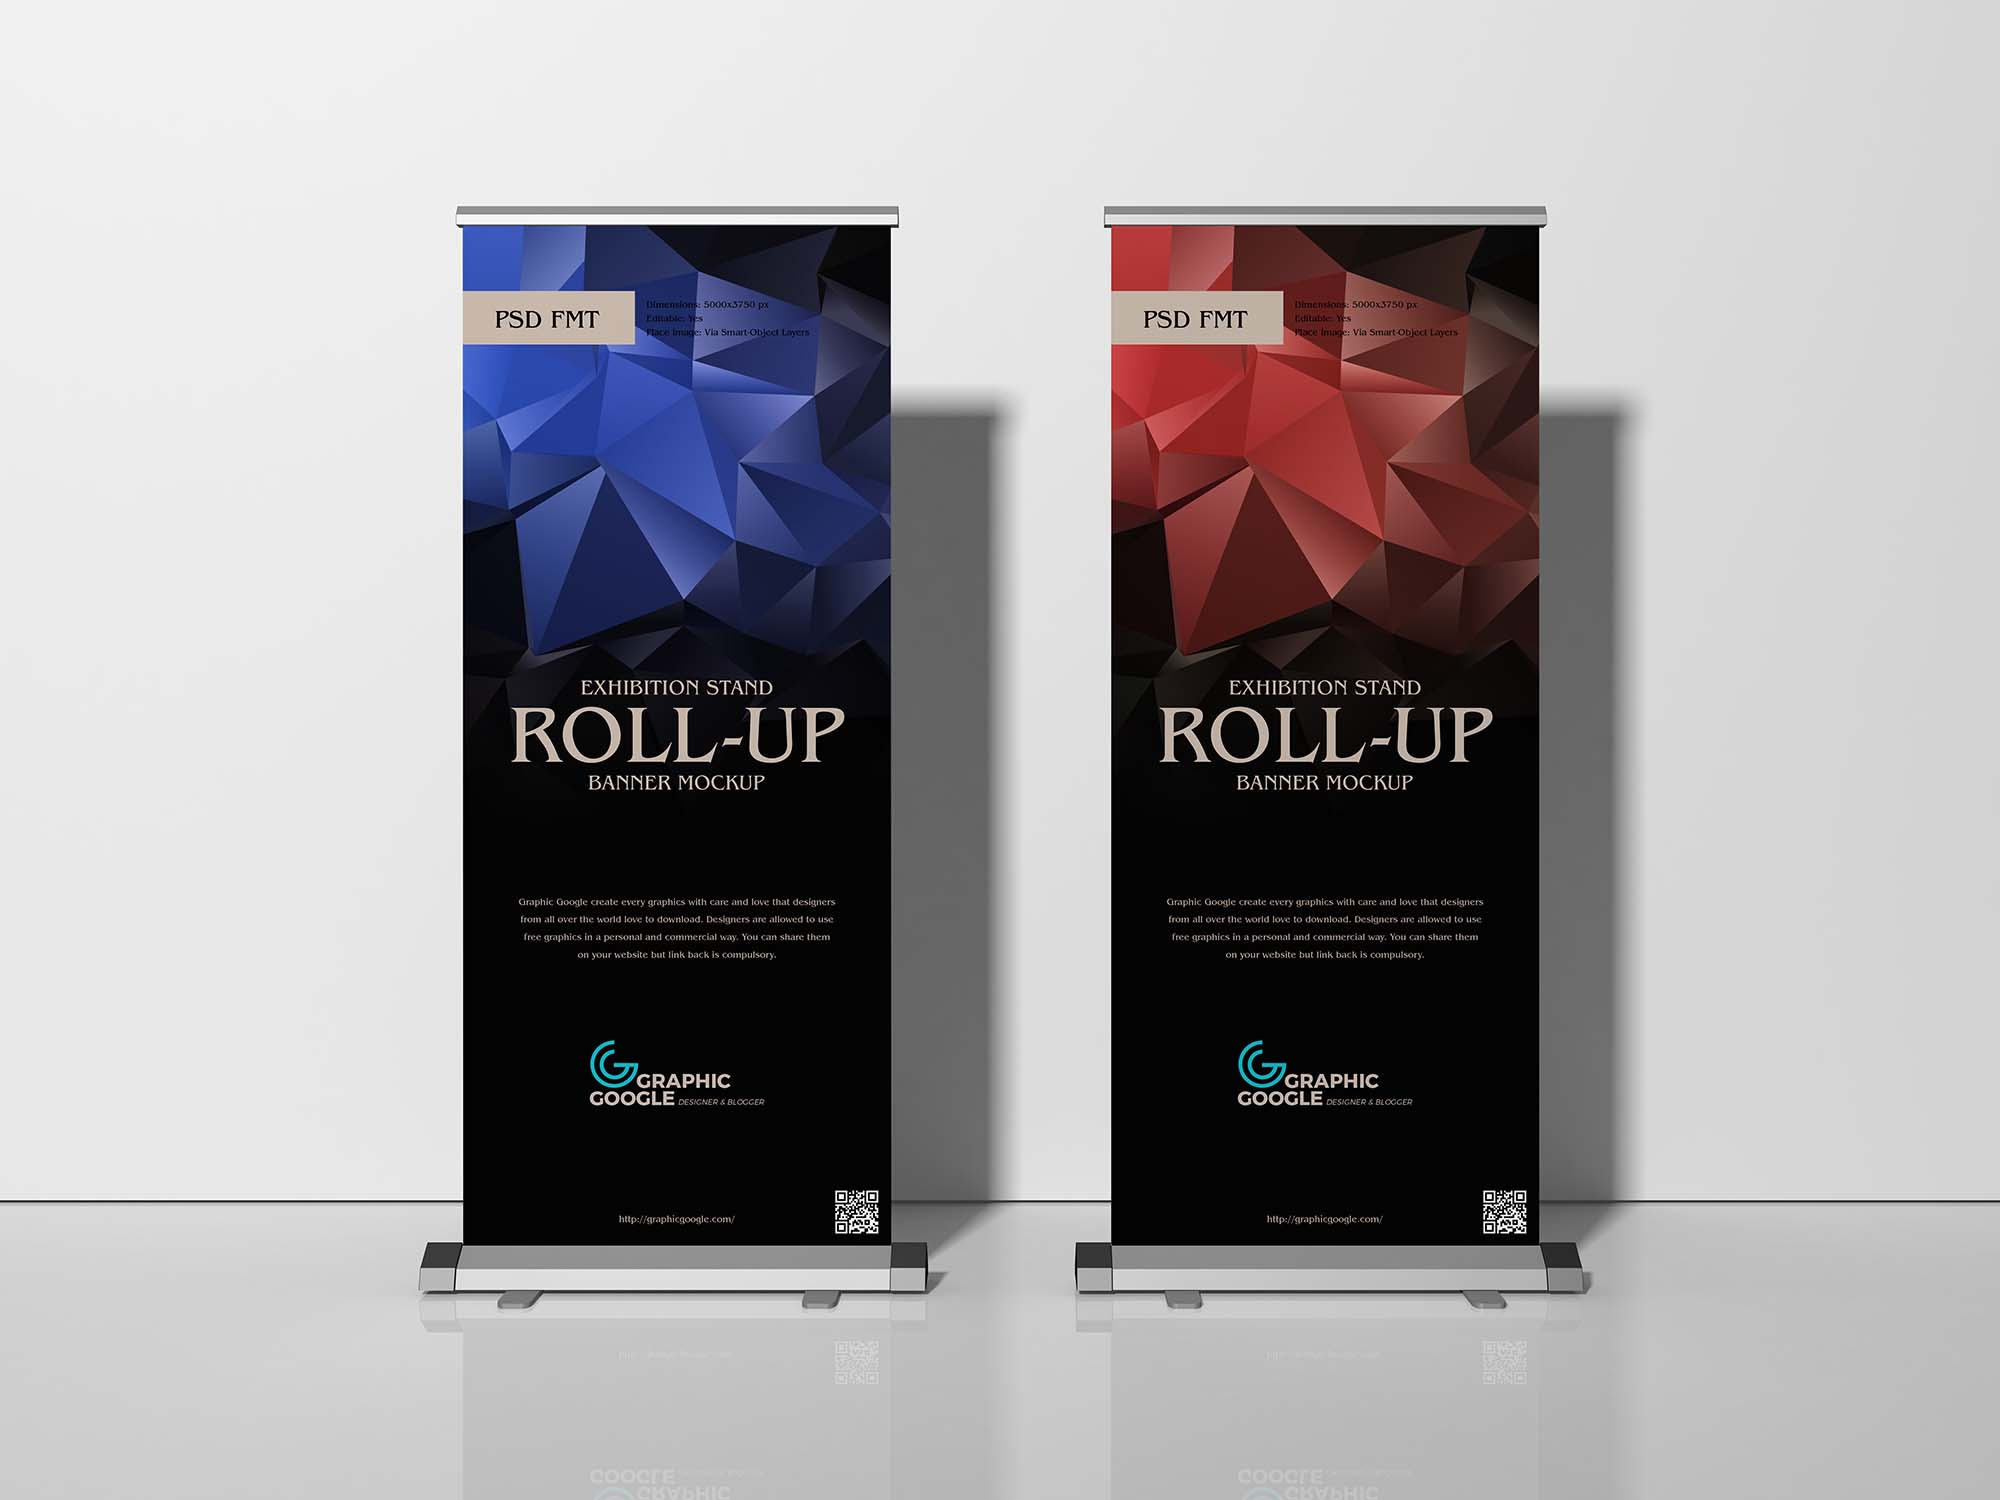 Exhibition Stand Roll-Up Banner Mockup 2